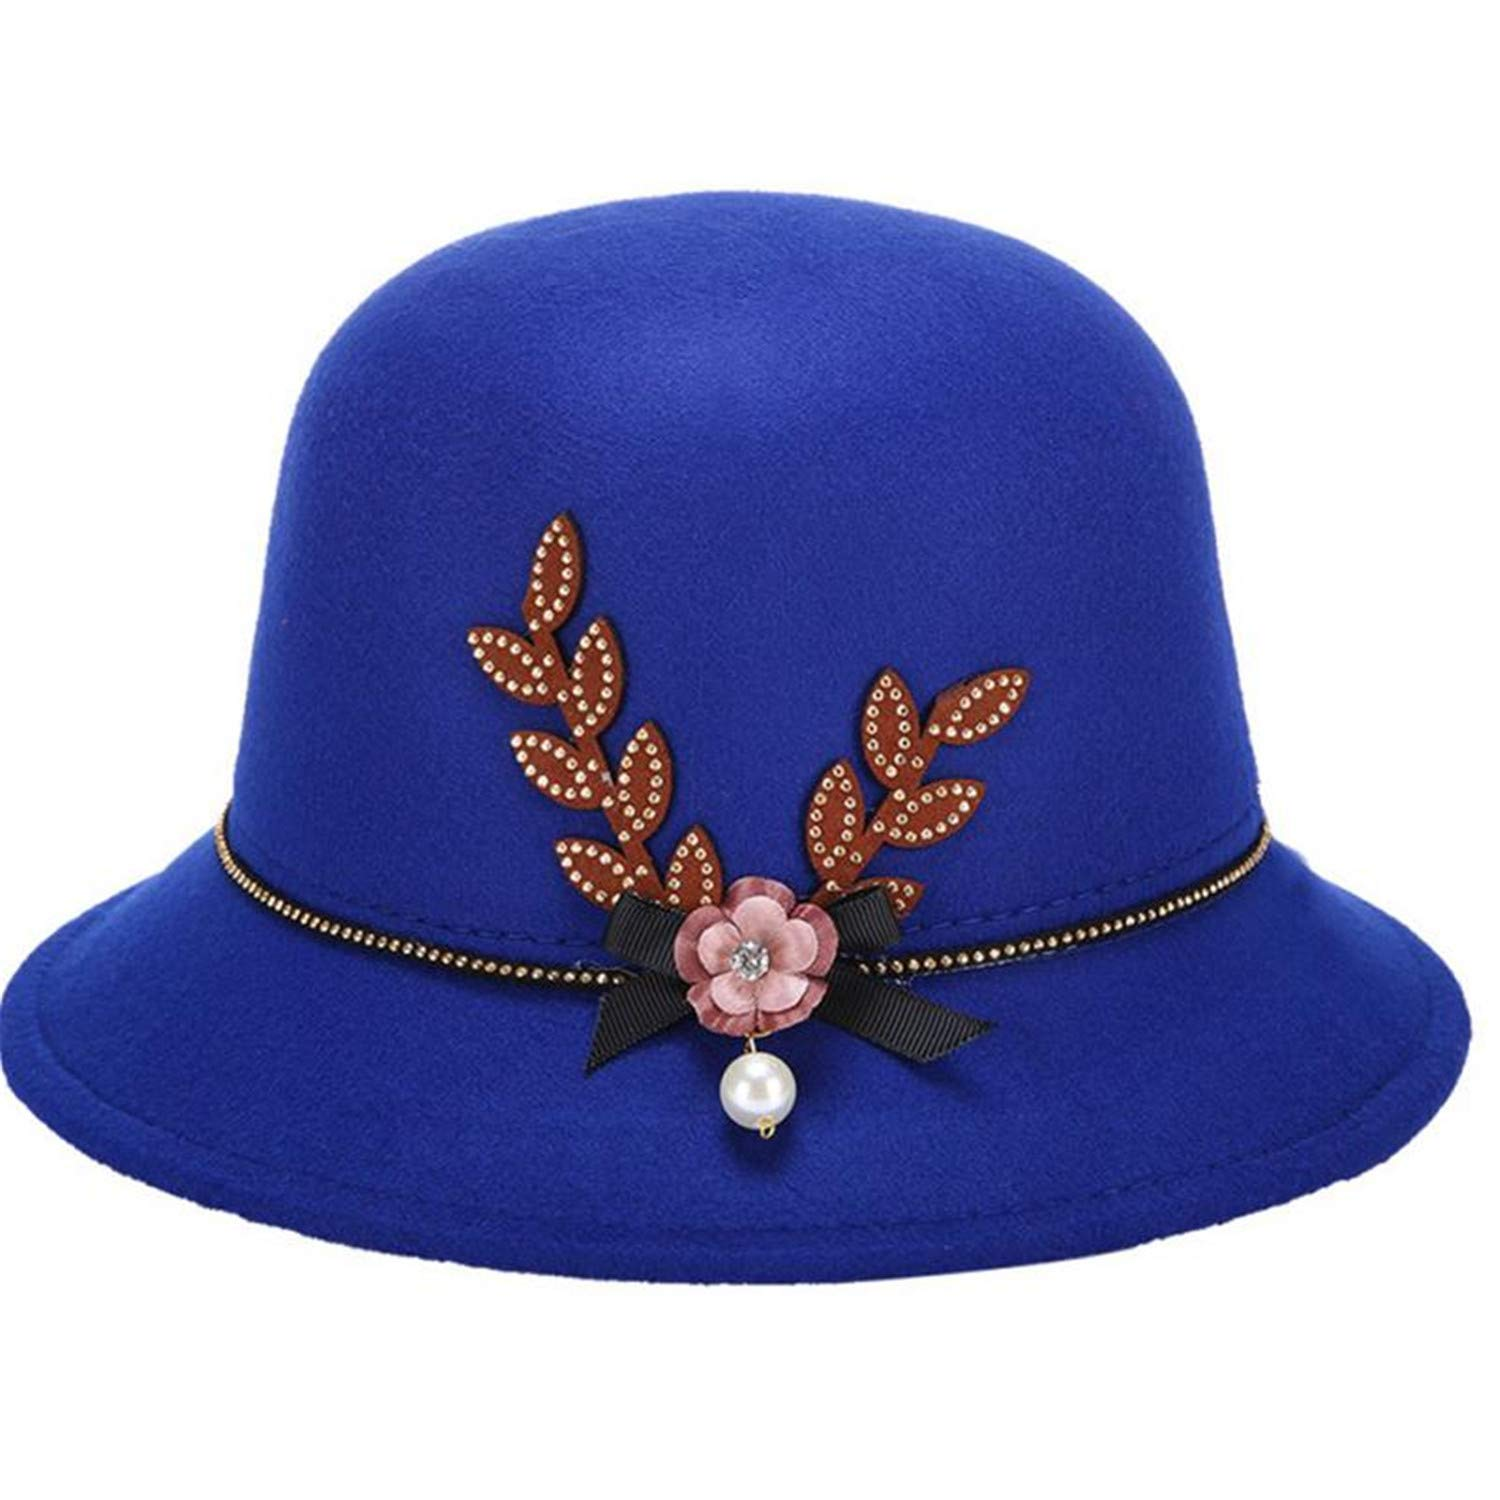 Zesoma Flower Pearl Bow-Knot Decorated Felt Cap Warm Easy Match Lady Bowler Hat